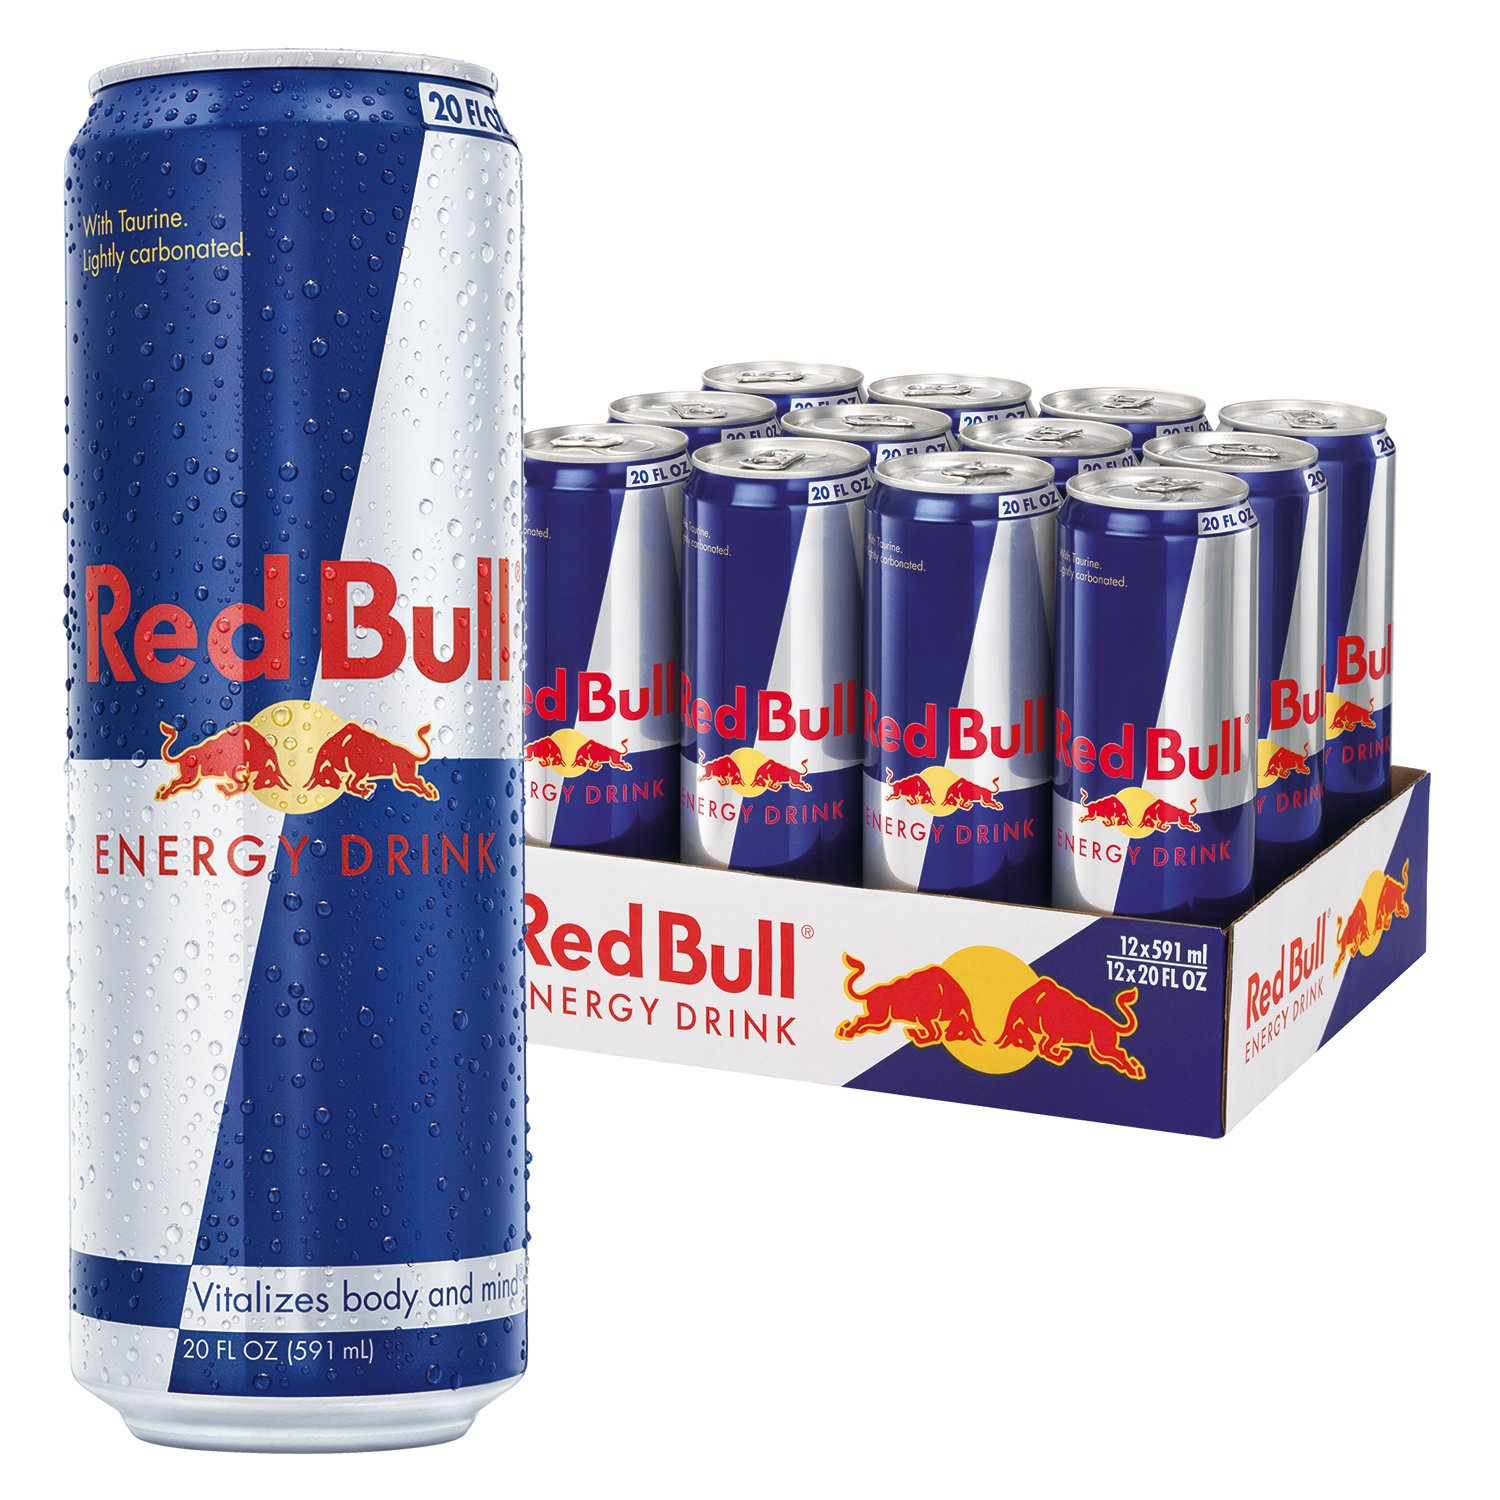 red bull energy drink 20 fl oz cans 12 pack food. Black Bedroom Furniture Sets. Home Design Ideas